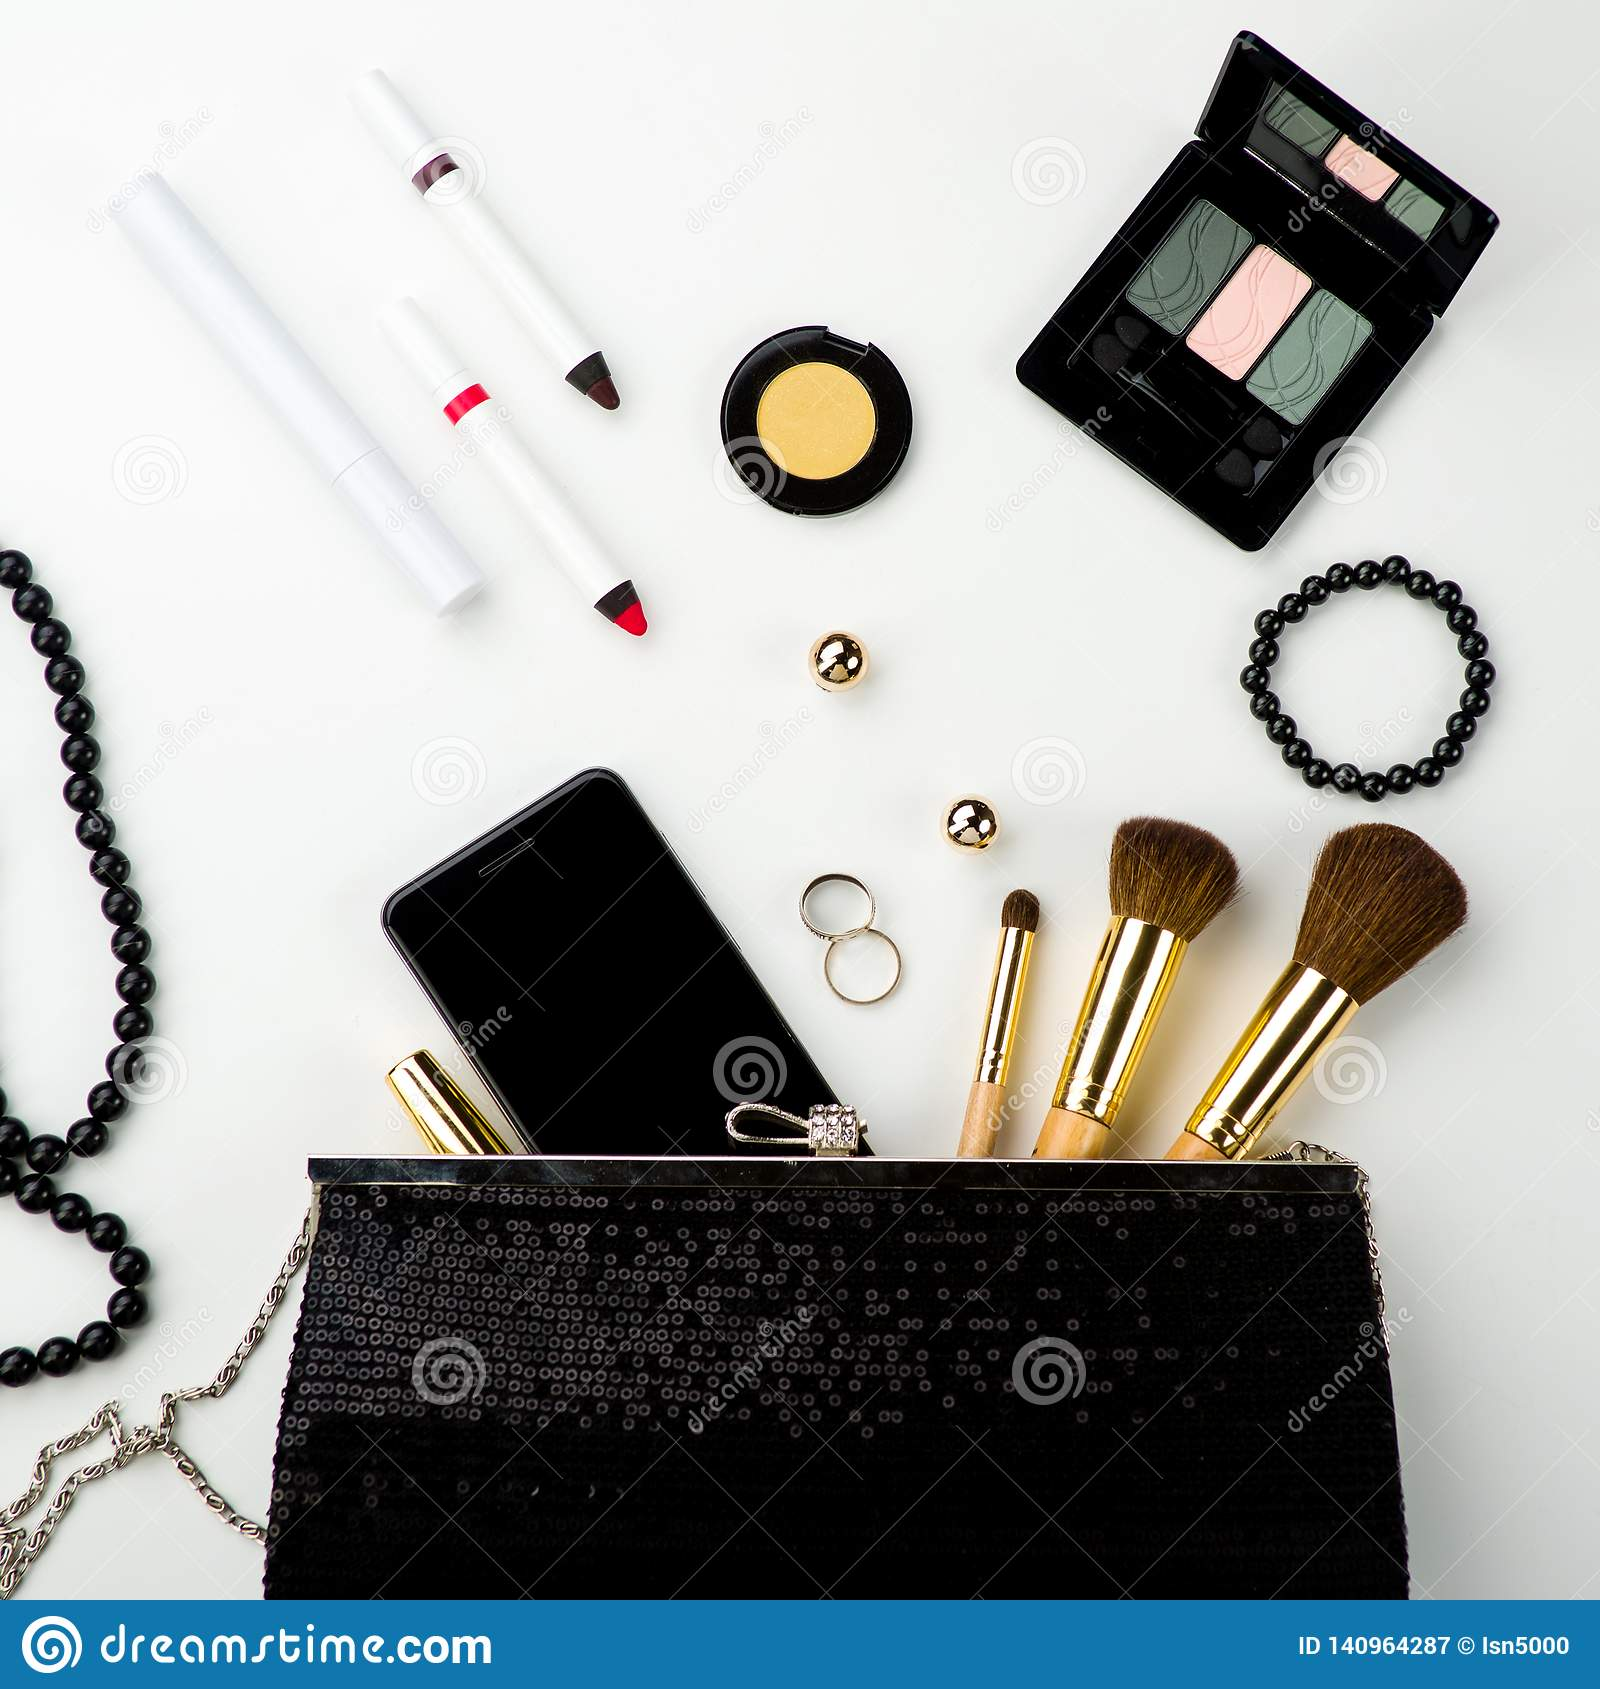 Fashionable female accessories brushes smartphone lipstick eyeshadow and black bag